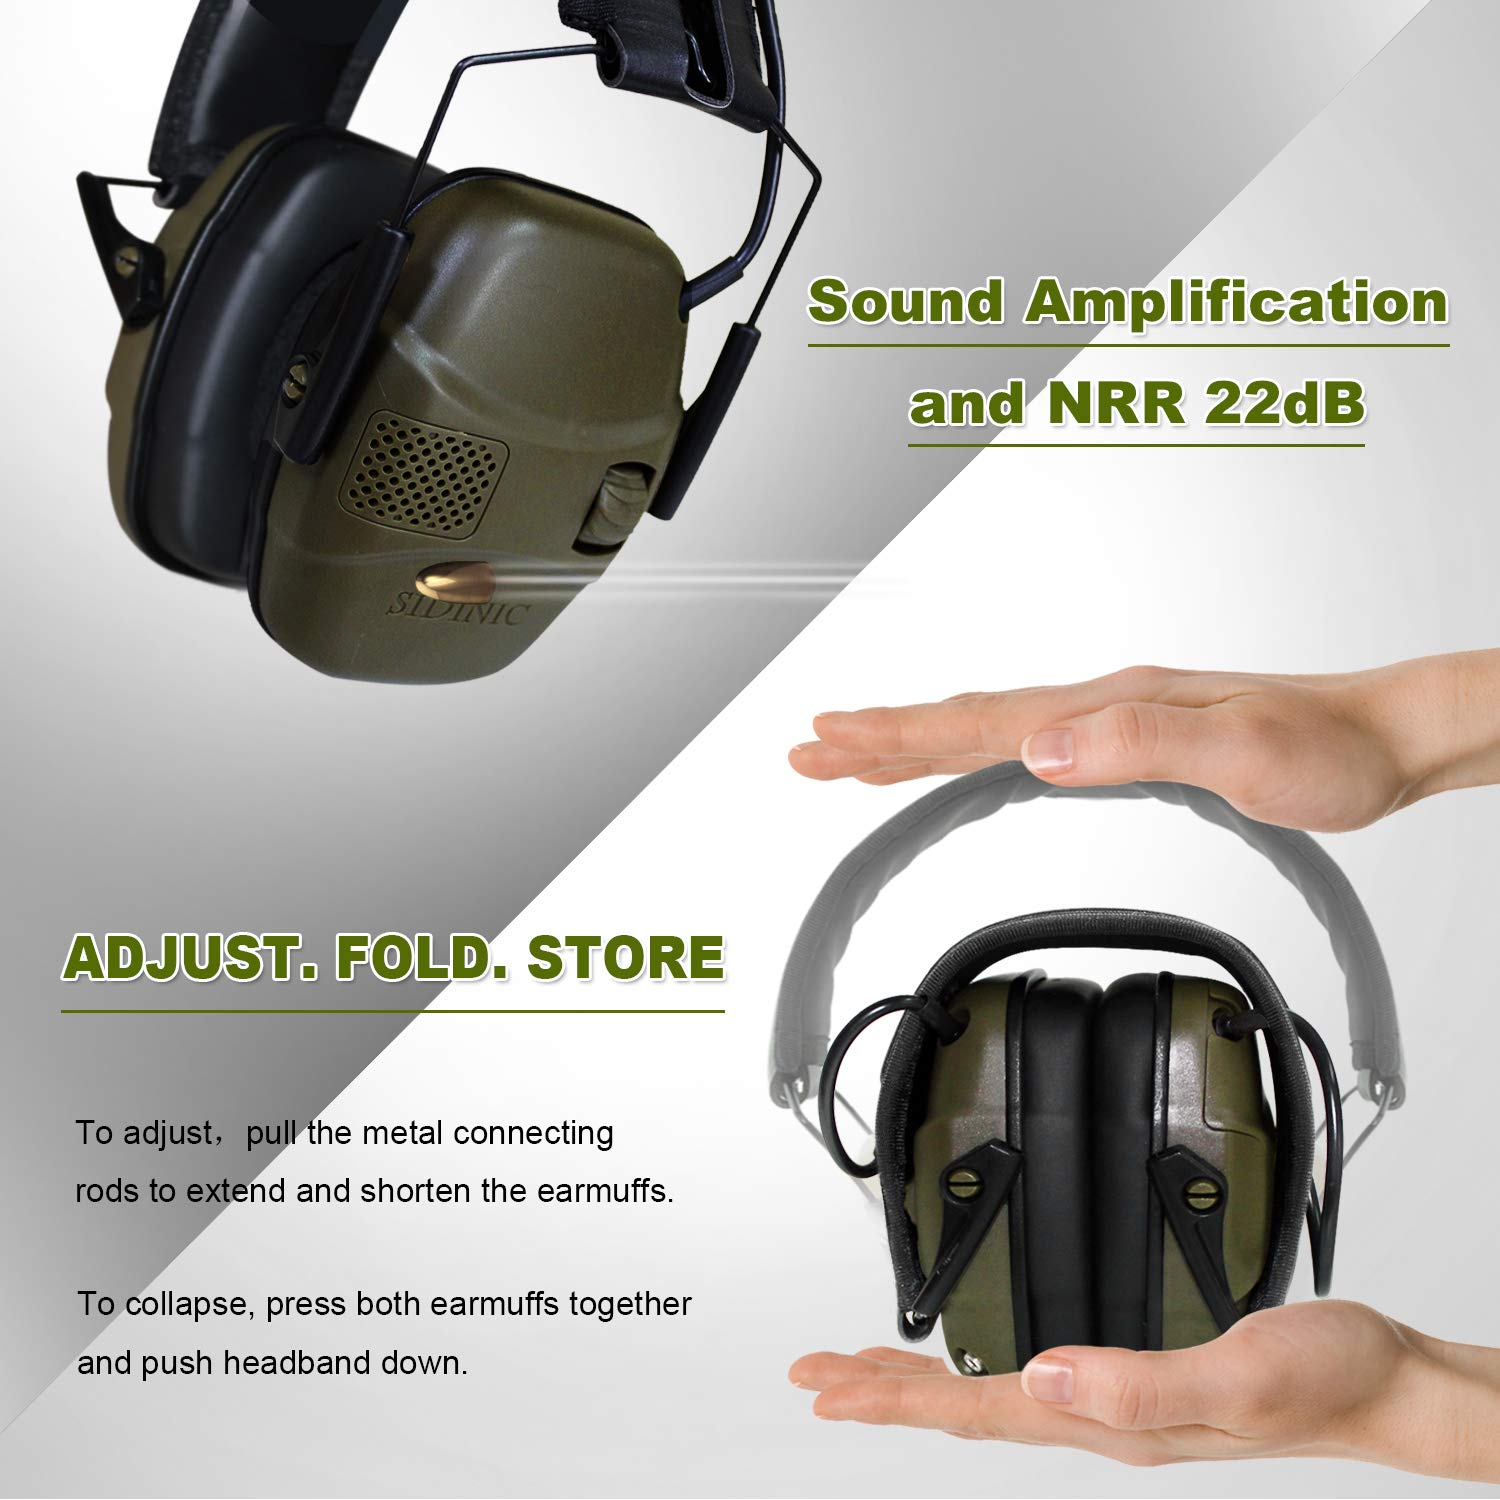 ucho Electronic Shooting Earmuff Safety Ear Protection - Shooting Ear Protection Muffs with Sound Amplification and Noise Reduction Safety Ear Muffs, NRR 22dB Ideal for Shooting and Hunting